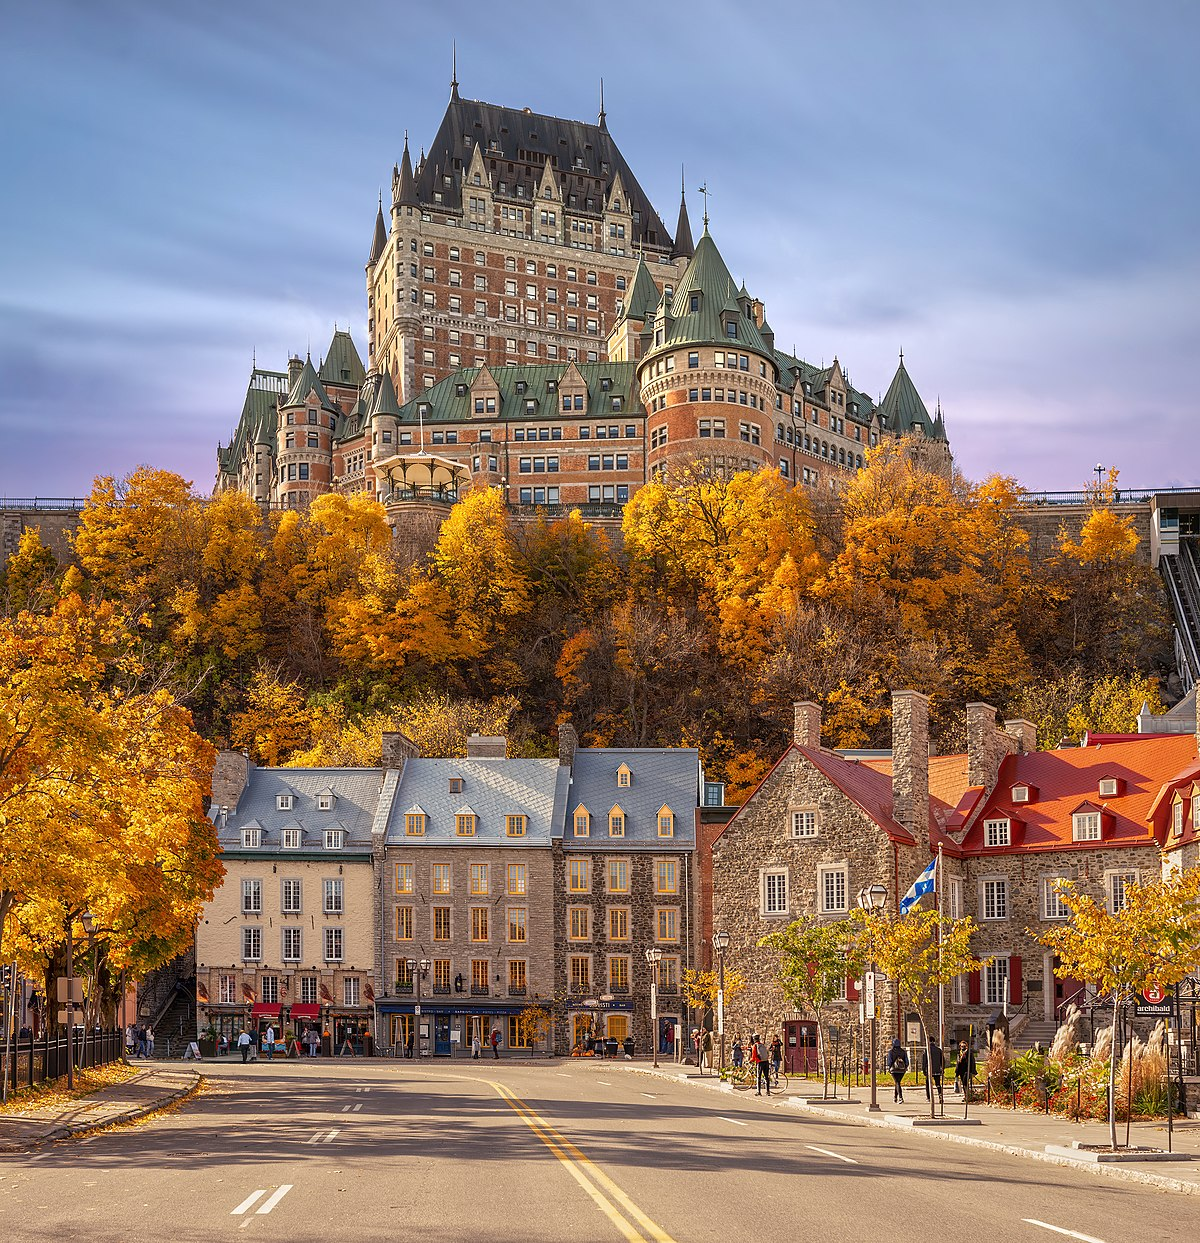 File:Château Frontenac, Quebec city, Canada.jpg - Wikimedia Commons